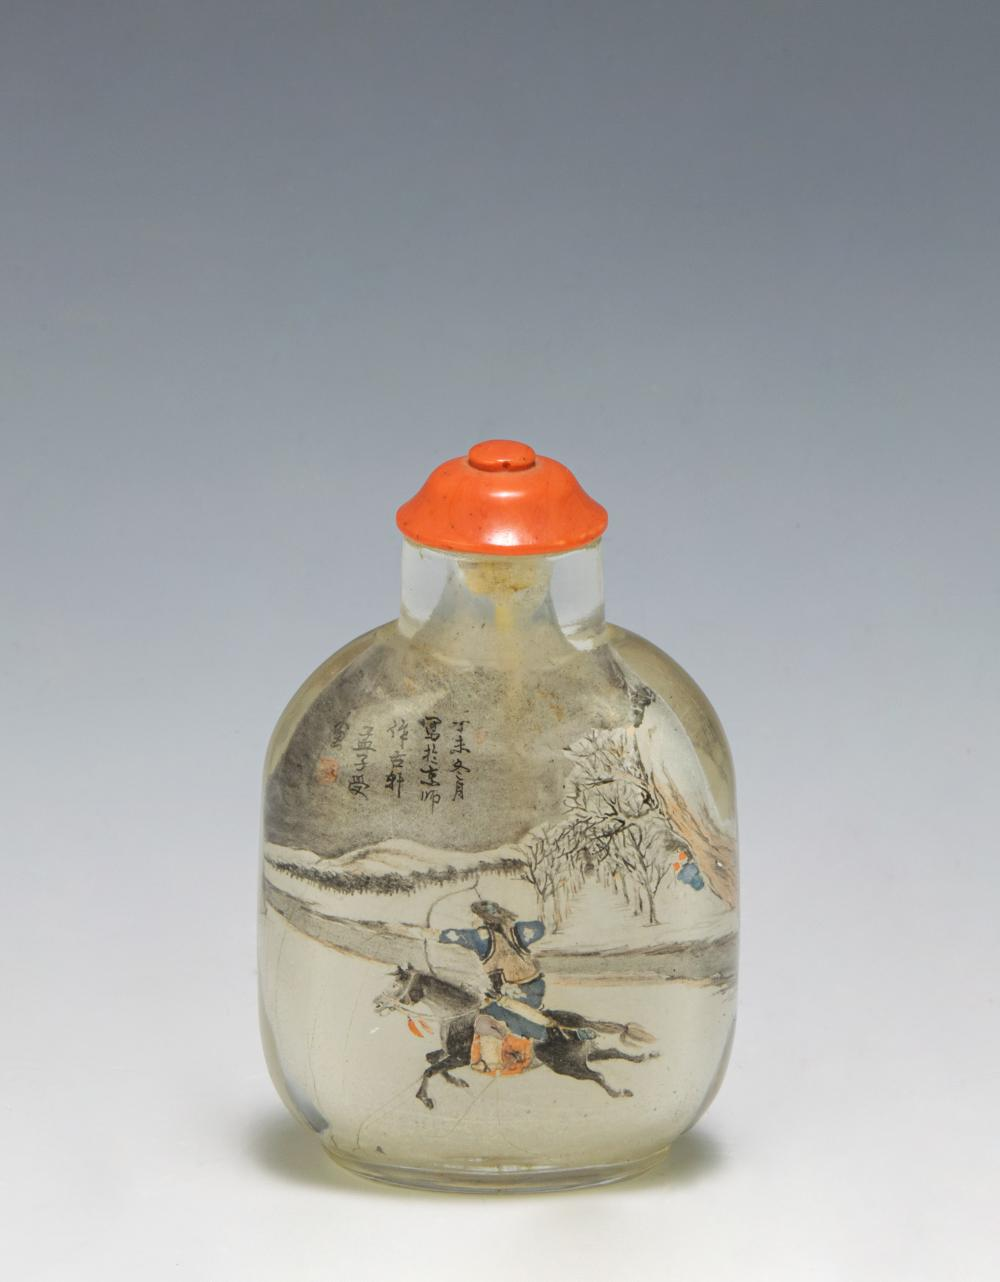 Lot 629: CHINESE INSIDE-PAINTED SNUFF BOTTLE BY MENG ZISHOU